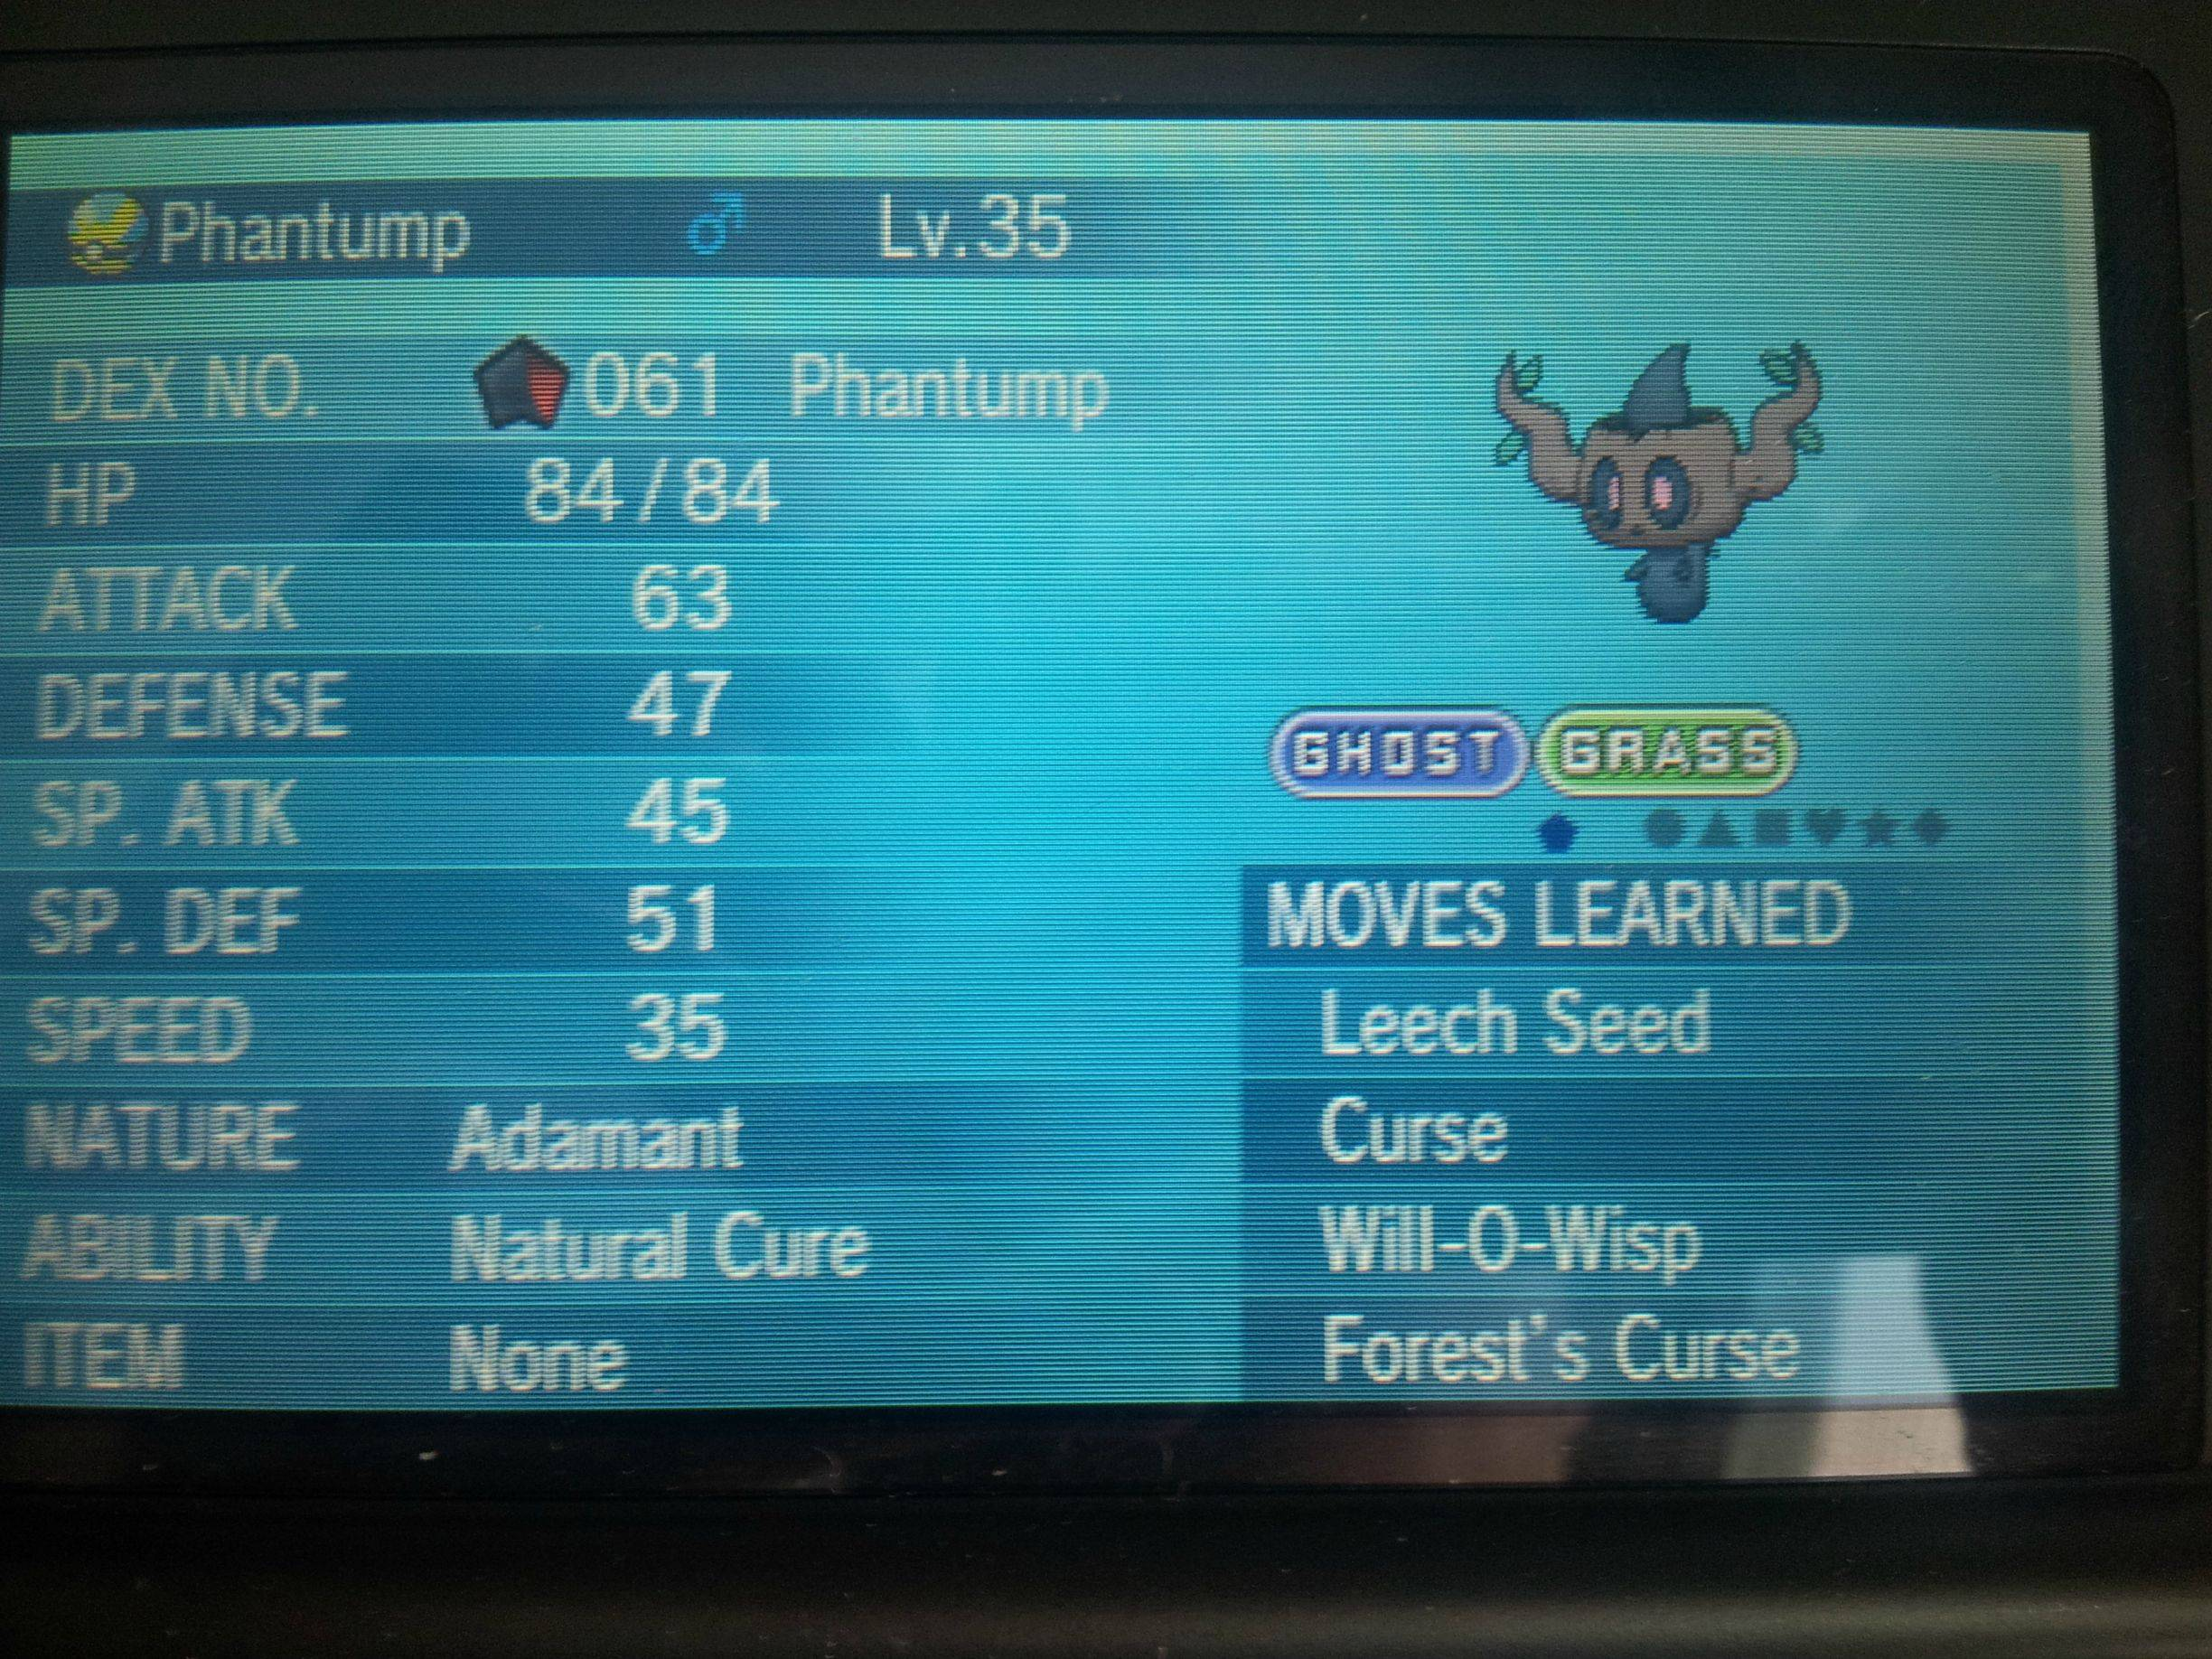 Phantump!